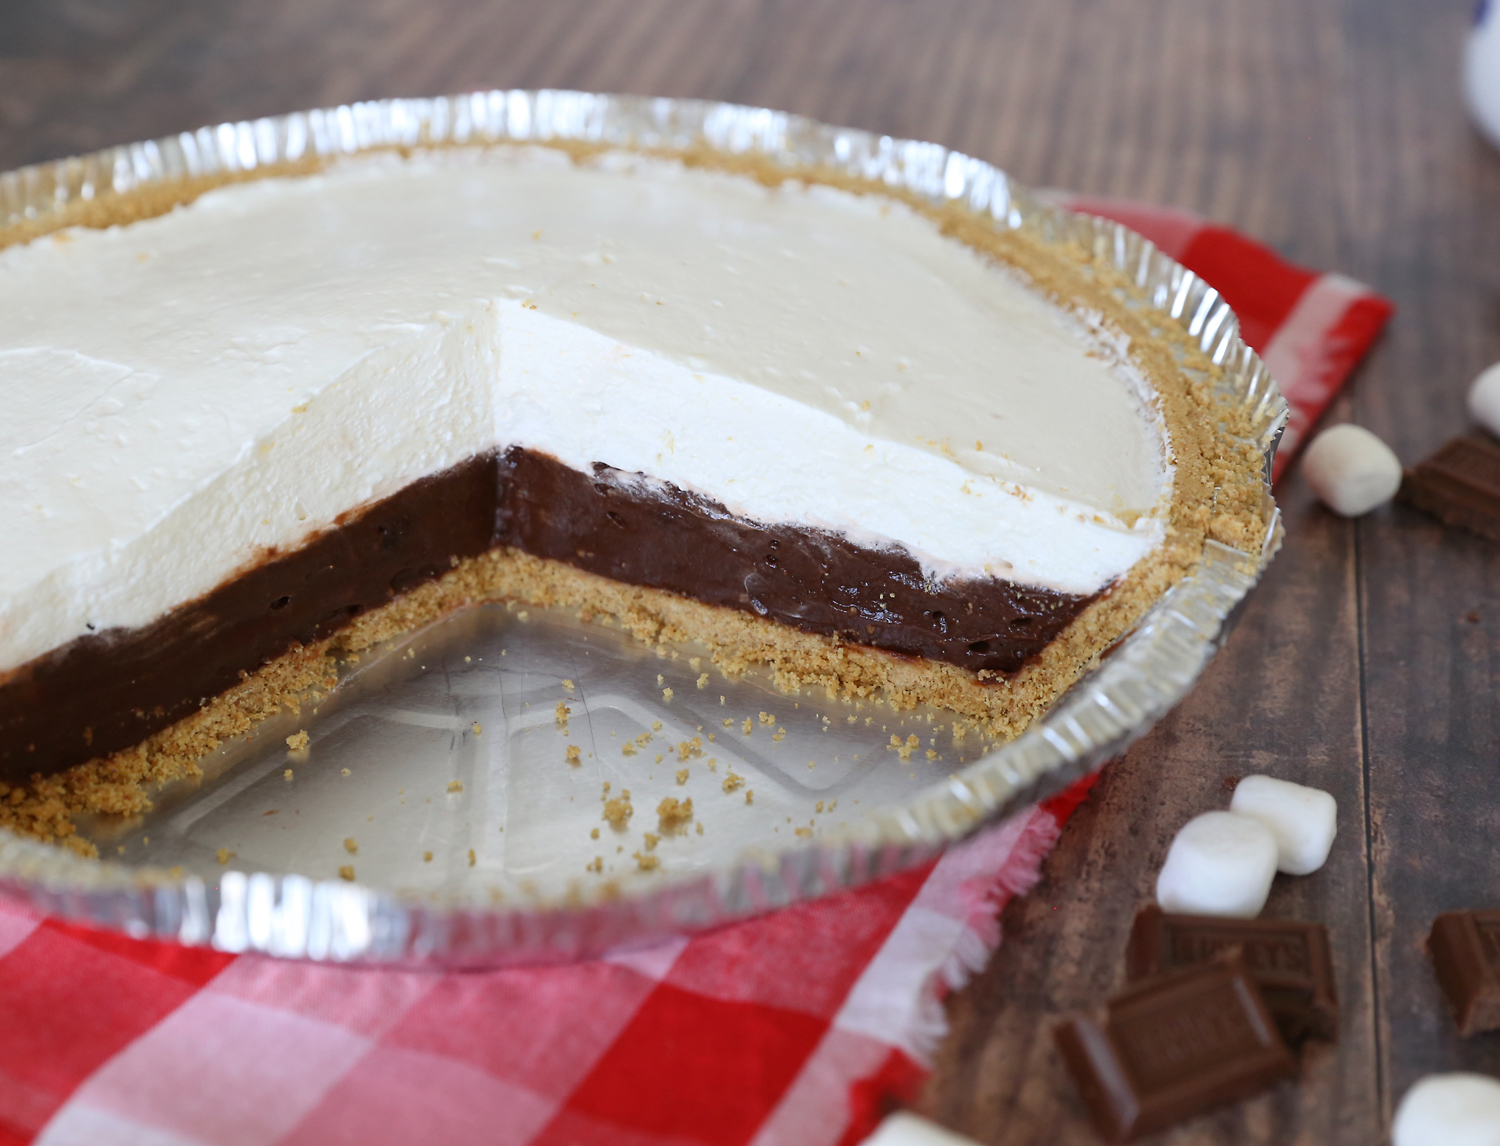 S'mores pie in a pie plate with a few pieces gone